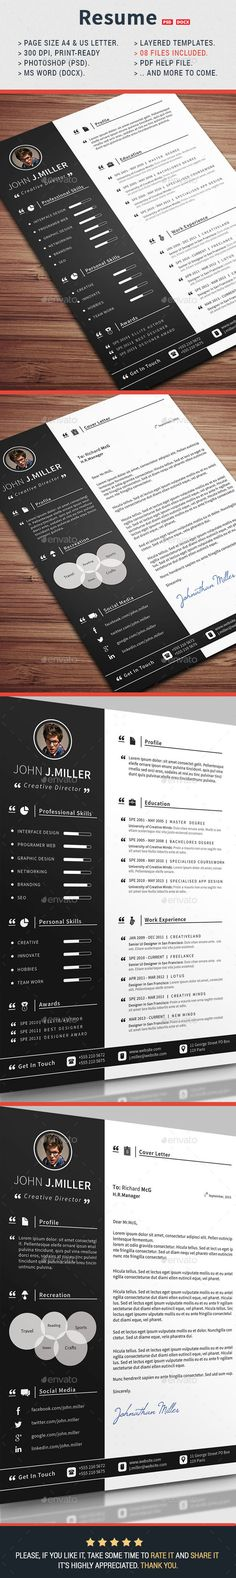 7 resume design concepts which get you hired - Resume Tips Resume Layout, Resume Tips, Resume Design, Resume Cv, Portfolio Resume, Portfolio Design, Graphisches Design, Layout Design, Cv Template